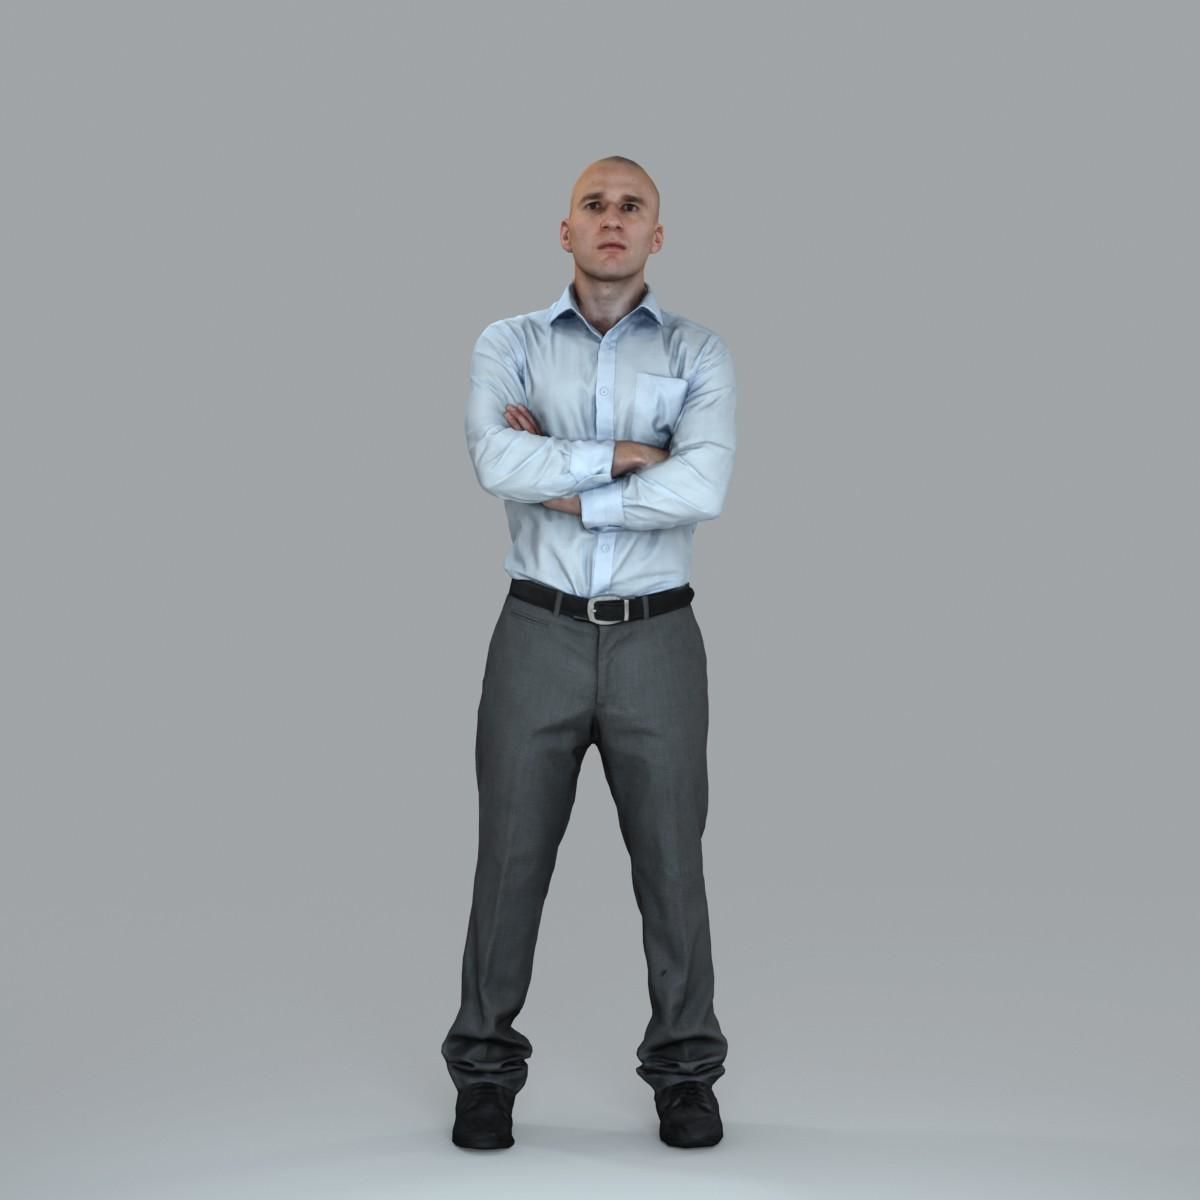 Arms-Crossed Standing Business Man BMan0006-HD2-O01P12-S